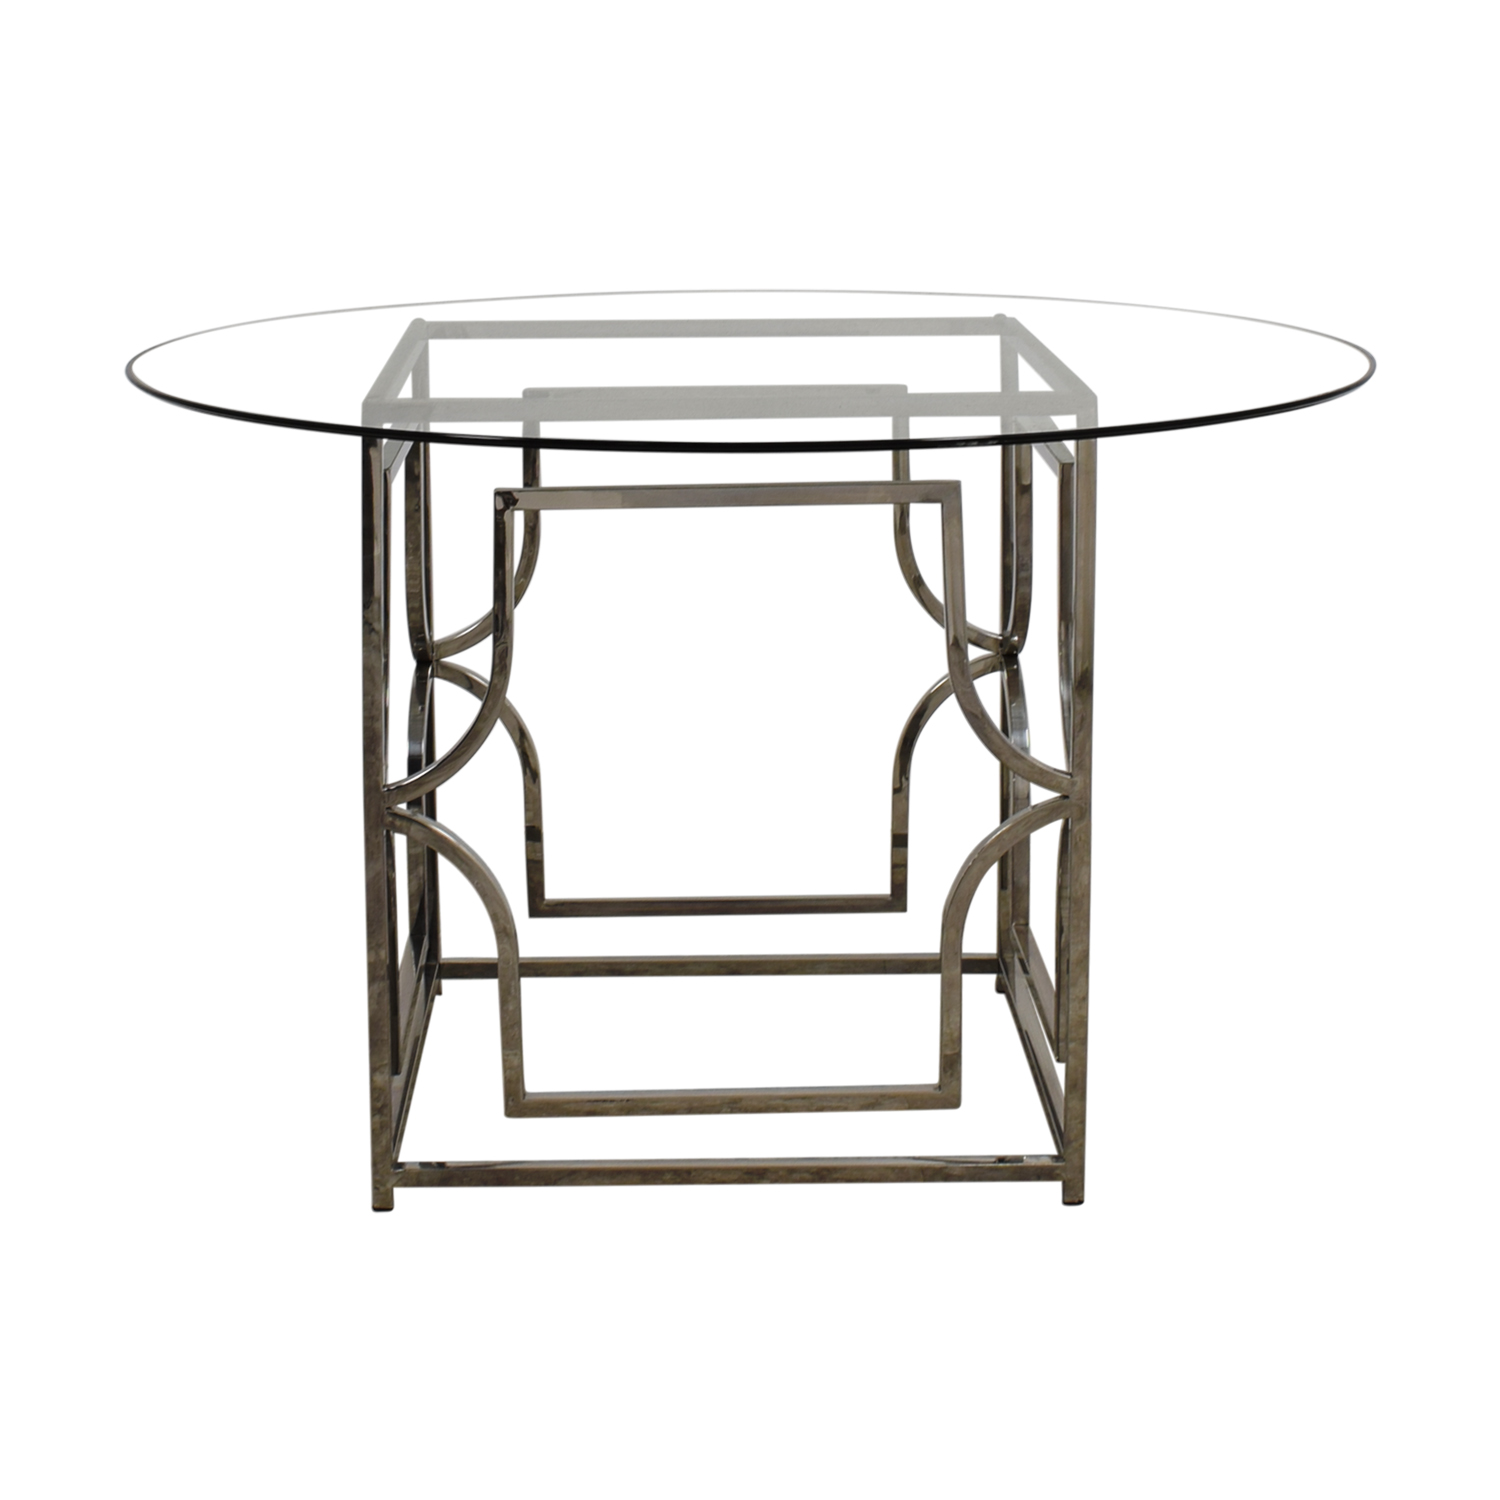 off gallerie abigail round glass and chrome dining table accent dinner tables nautical lamp shades contemporary wood coffee floor lamps outdoor couch piece nesting inexpensive